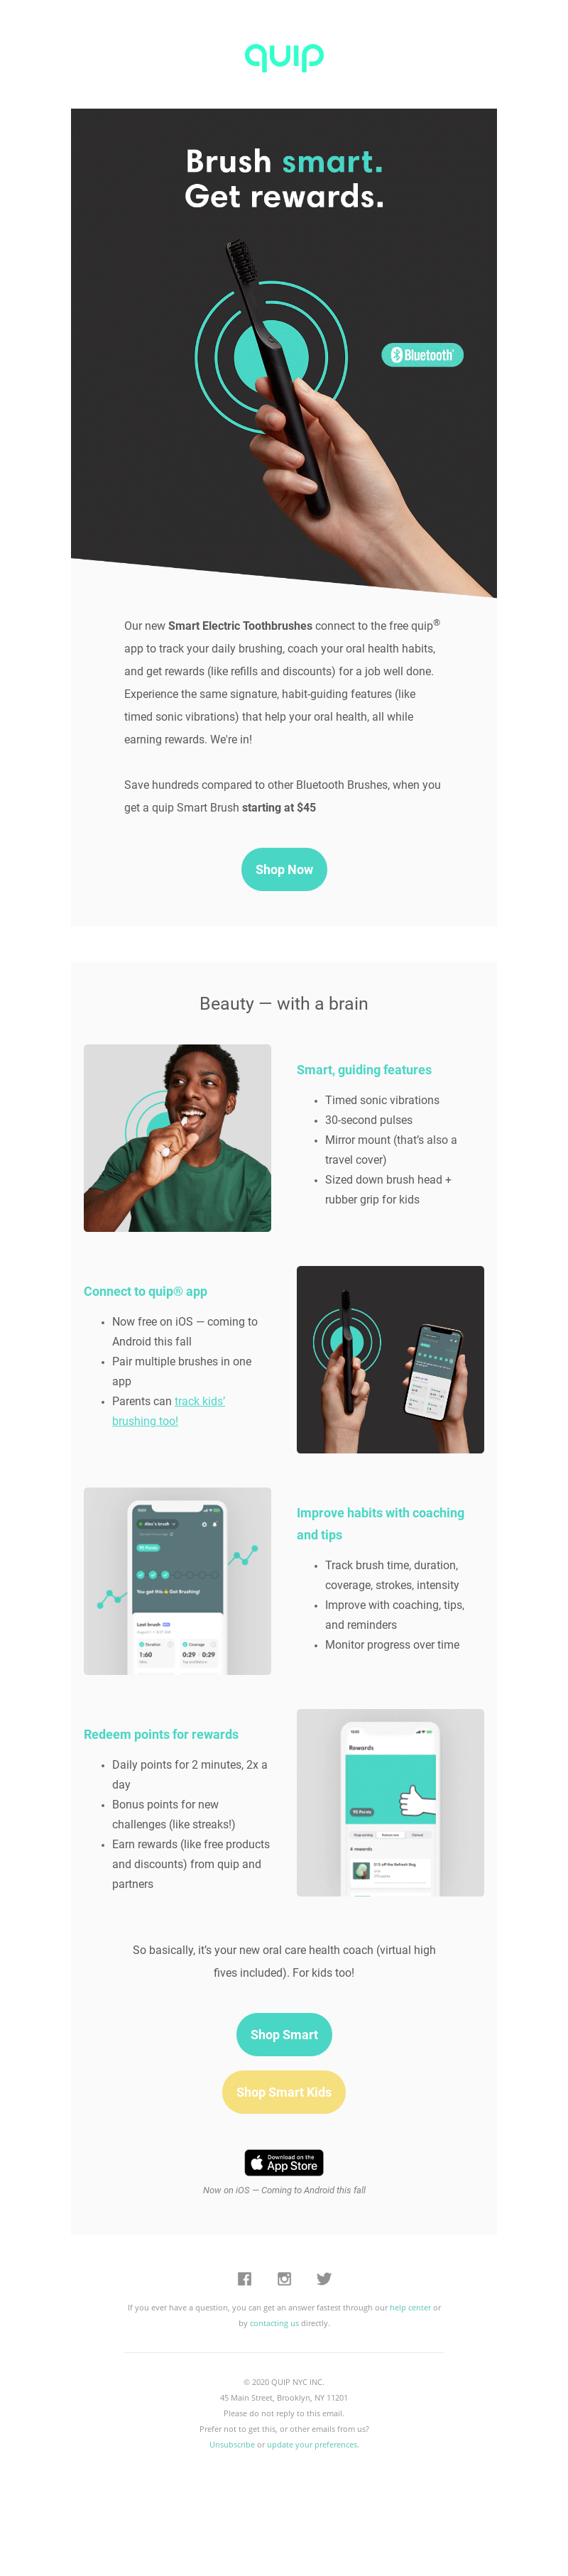 quip - Want rewards for brushing your teeth? Get Smart💰